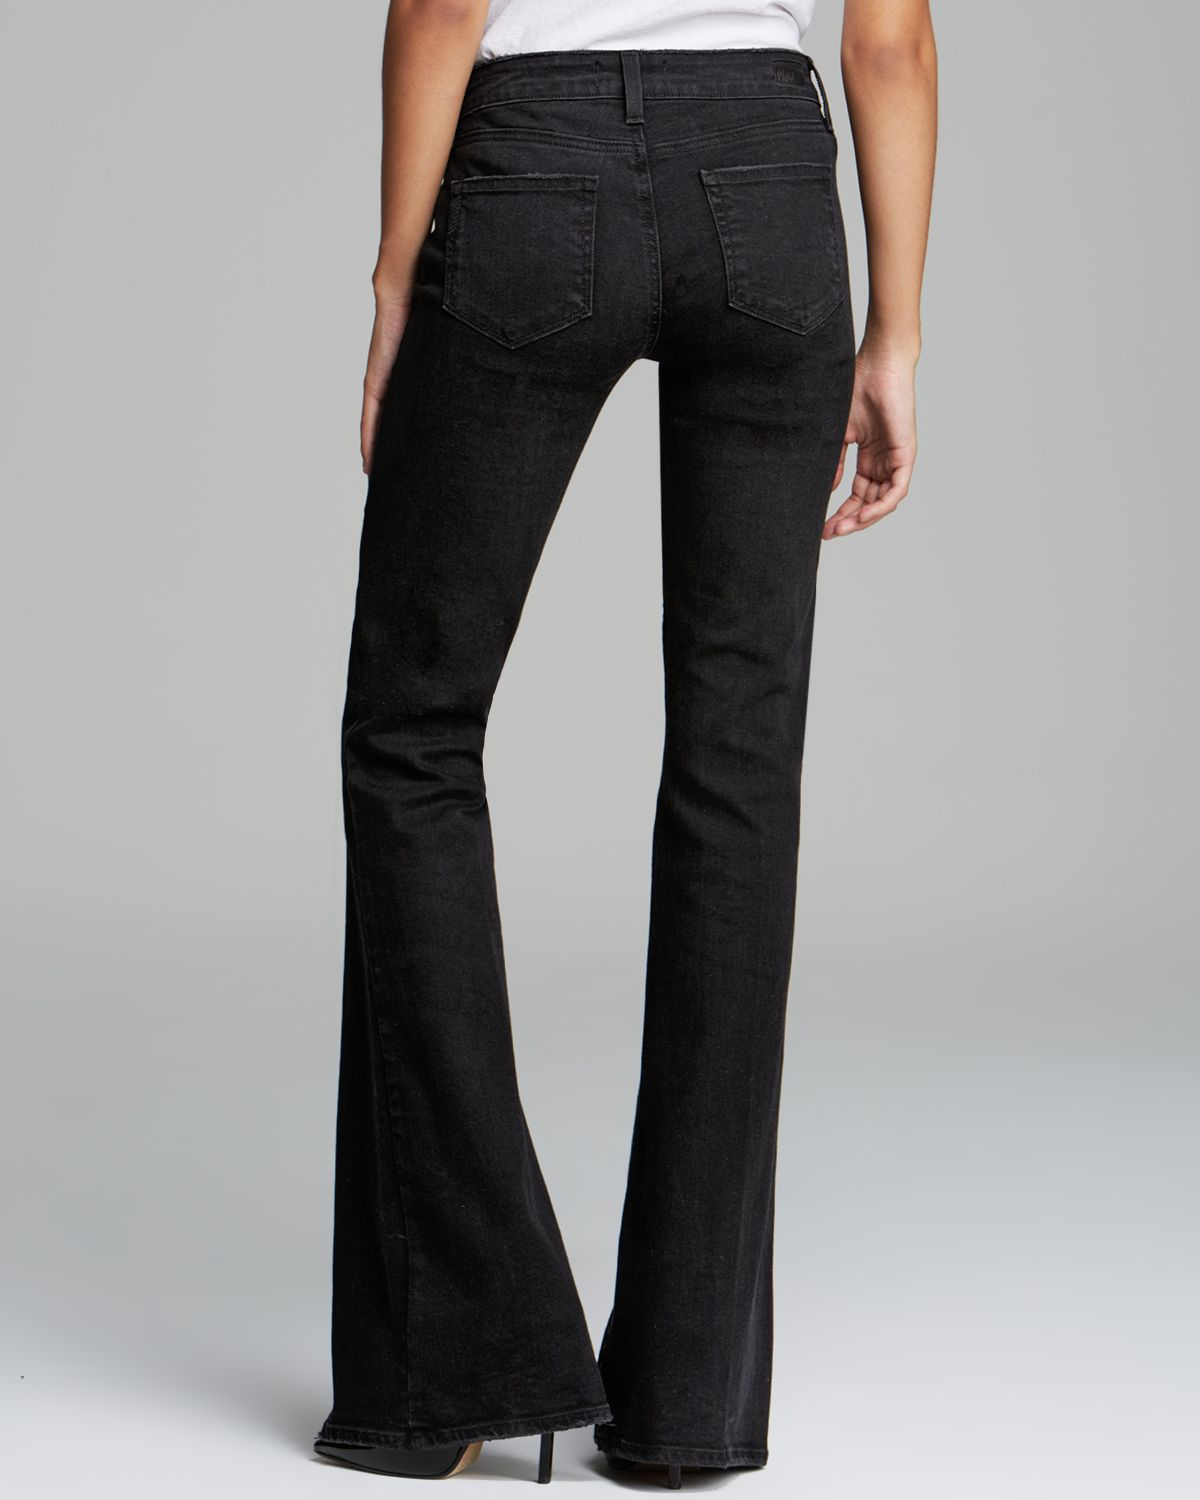 6d7eaa1b2b807 Lyst - PAIGE Jeans Fiona Flare in Vintage Black in Black